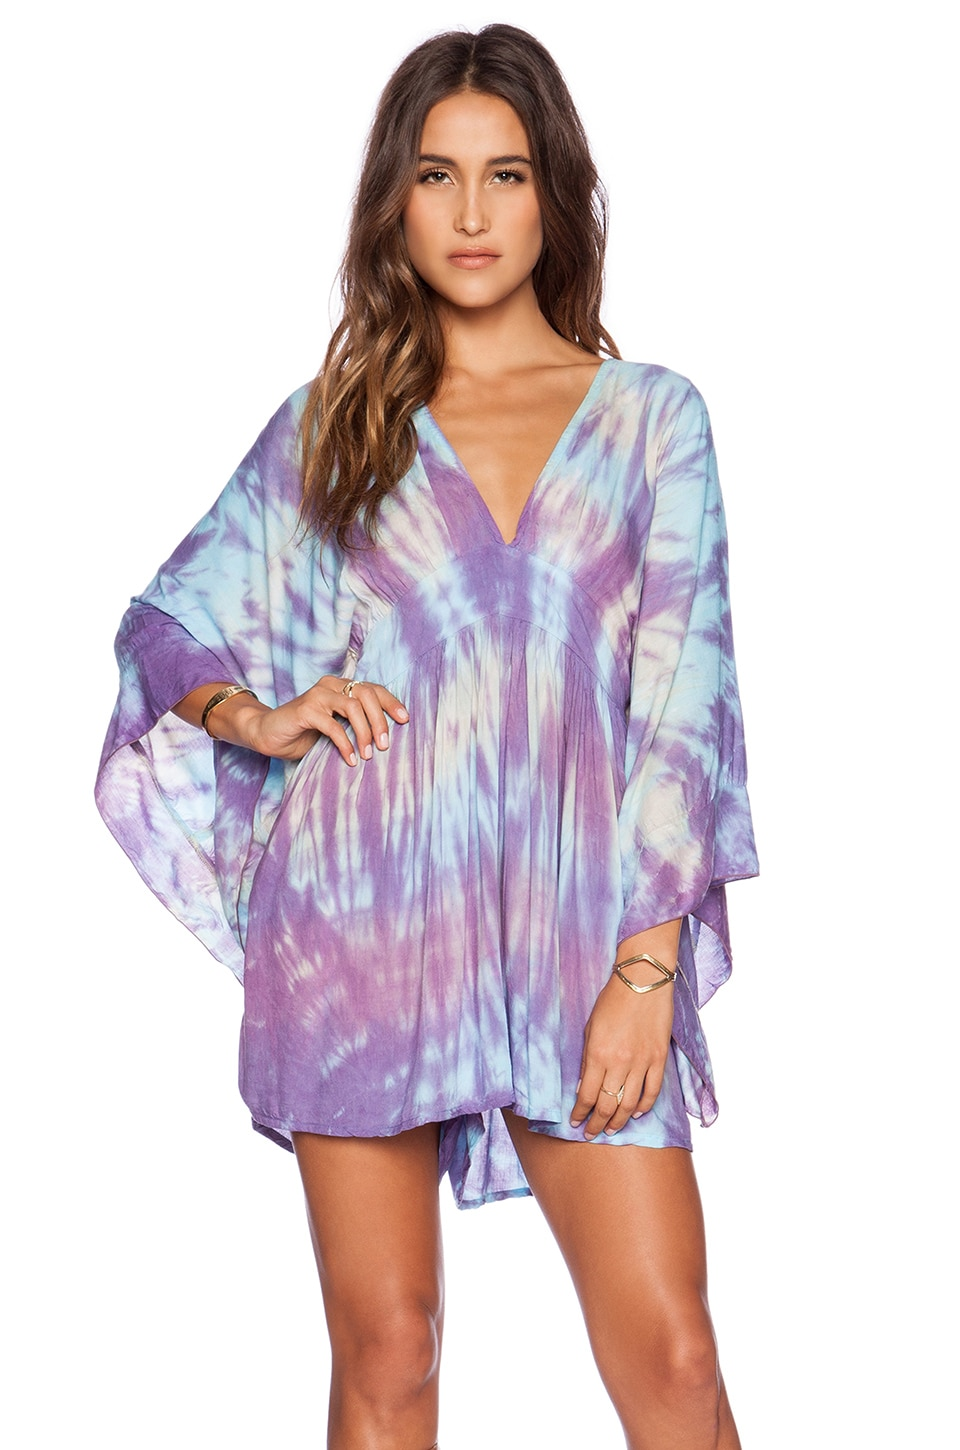 Tiare Hawaii Cairo Jumosuit in Purple & Cream Abstract